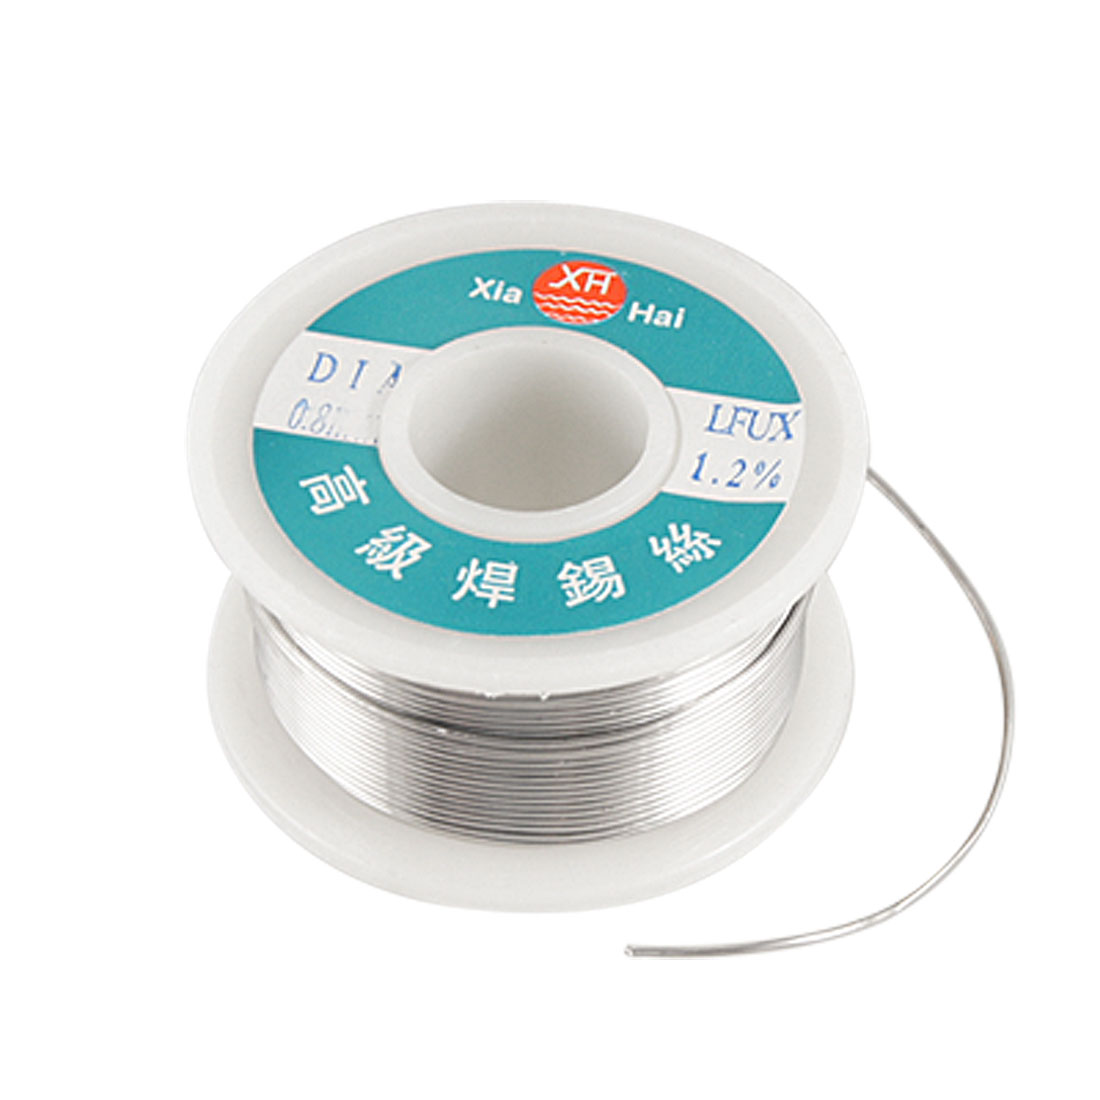 0.8mm 63/37 Rosin Core Flux 1.2% Tin Lead Roll Melting Soldering Solder Wire